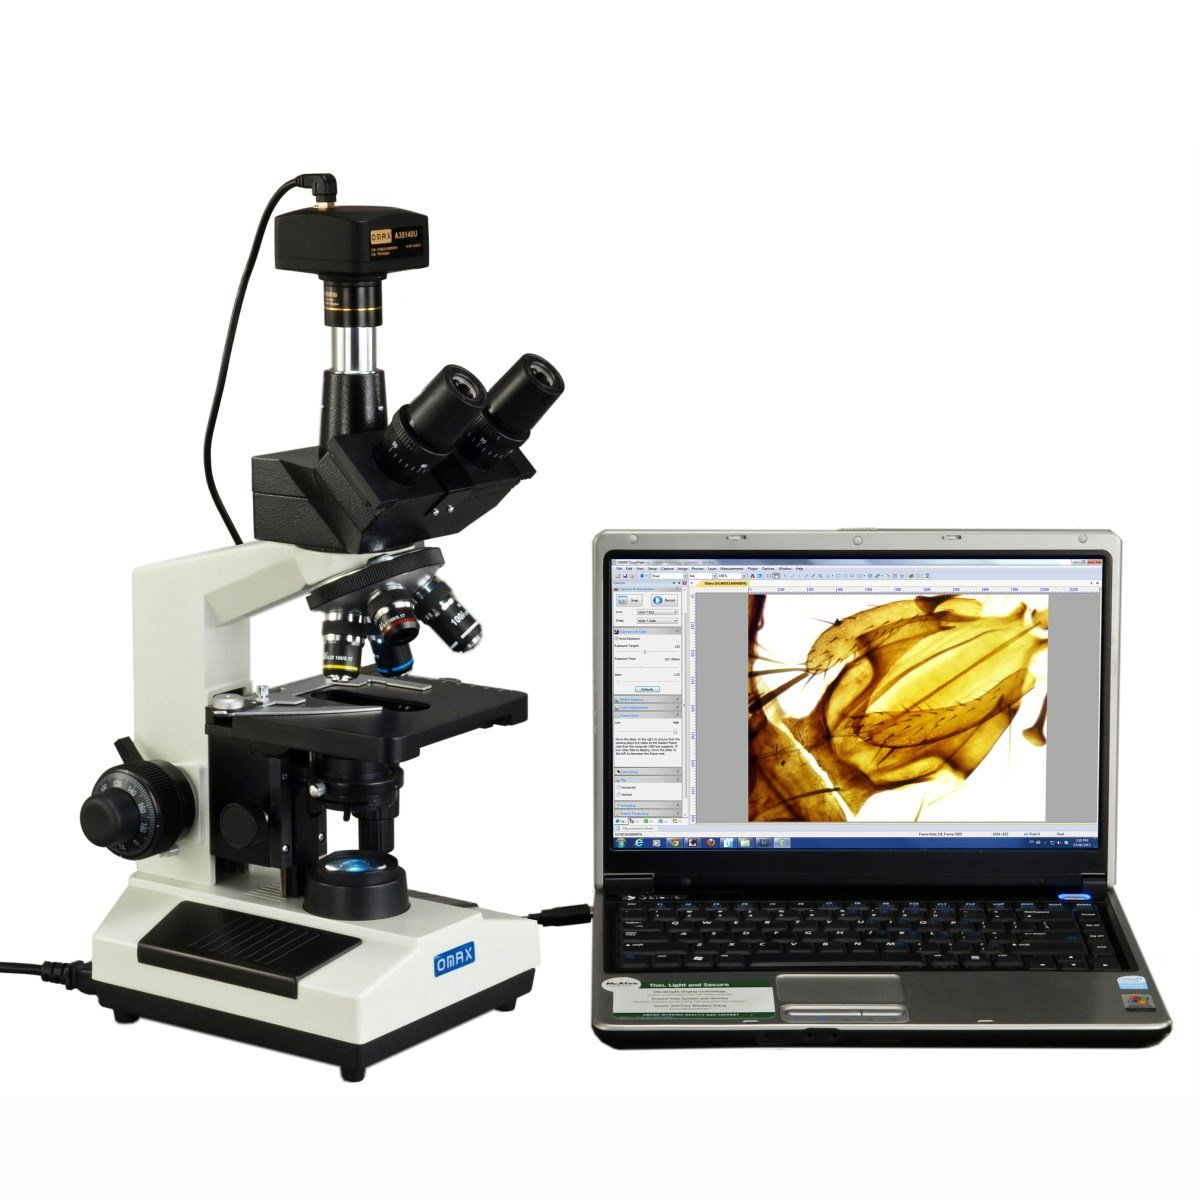 OMAX 40X-2500X Full Size Lab Digital Trinocular Compound LED Microscope with 14MP USB Camera and 3D Mechanical Stage by OMAX